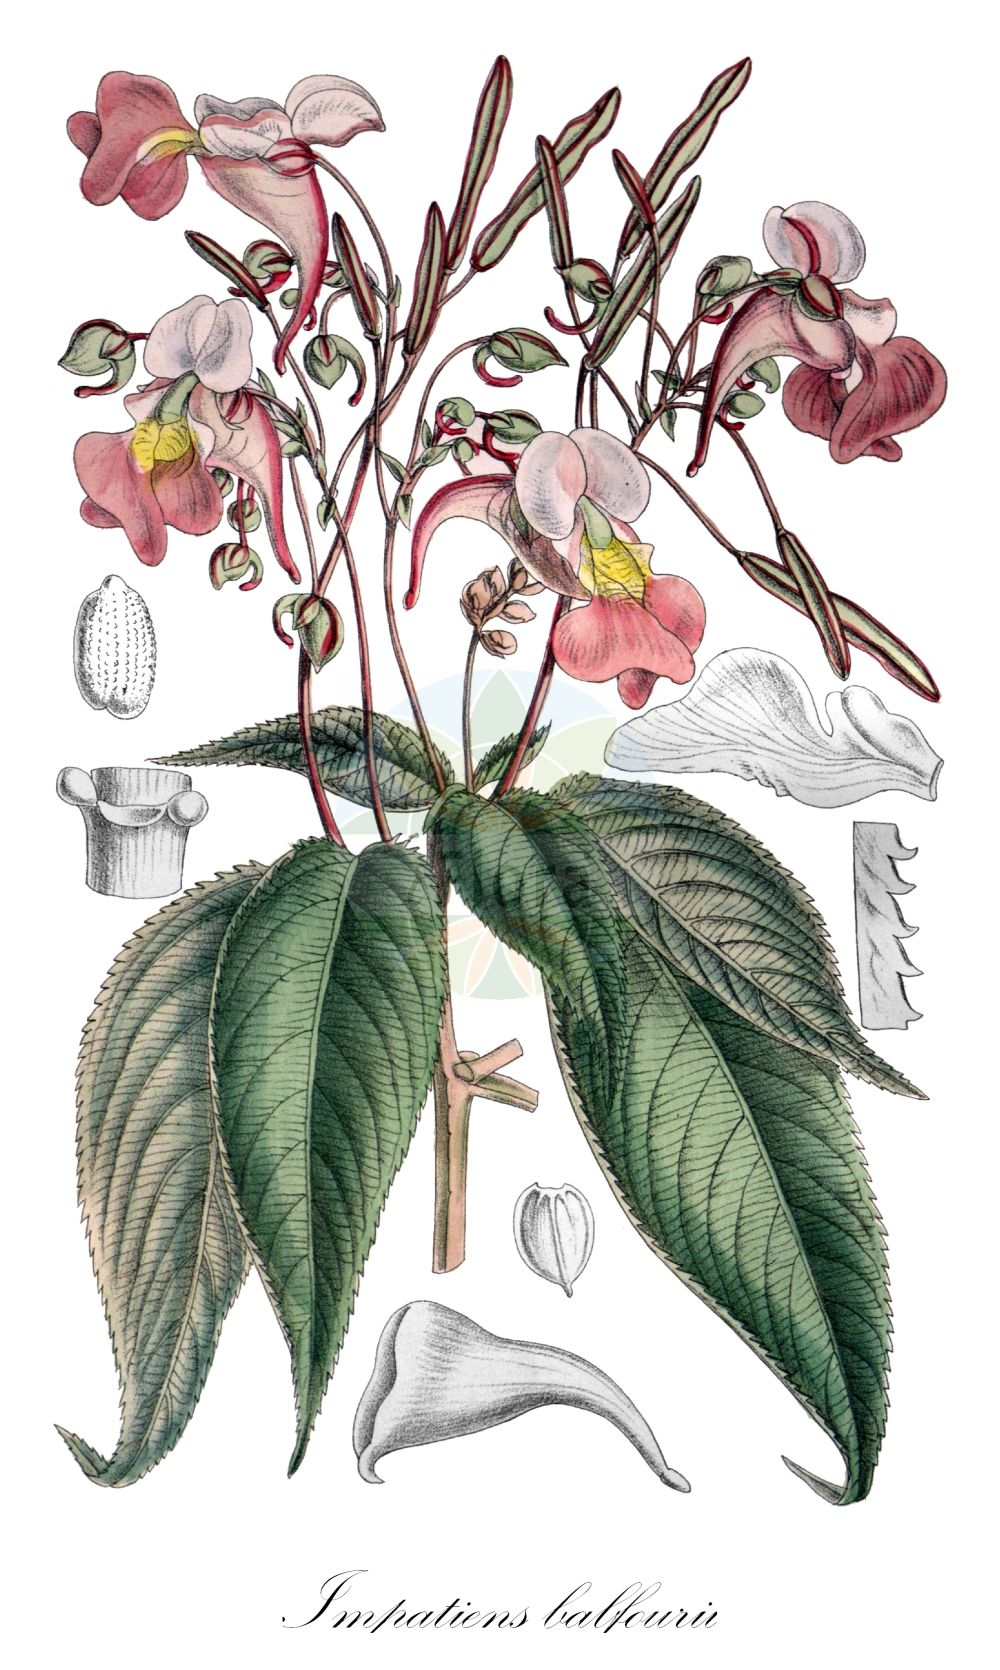 Historische Abbildung von Impatiens balfourii. Das Bild zeigt Blatt, Bluete, Frucht und Same. ---- Historical Drawing of Impatiens balfourii.The image is showing leaf, flower, fruit and seed.(Impatiens balfourii,Impatiens,Springkraut,Touch-me-Not,Balsaminaceae,Springkrautgewaechse,Balsam family,Blatt,Bluete,Frucht,Same,leaf,flower,fruit,seed,Smith (1854-1926))